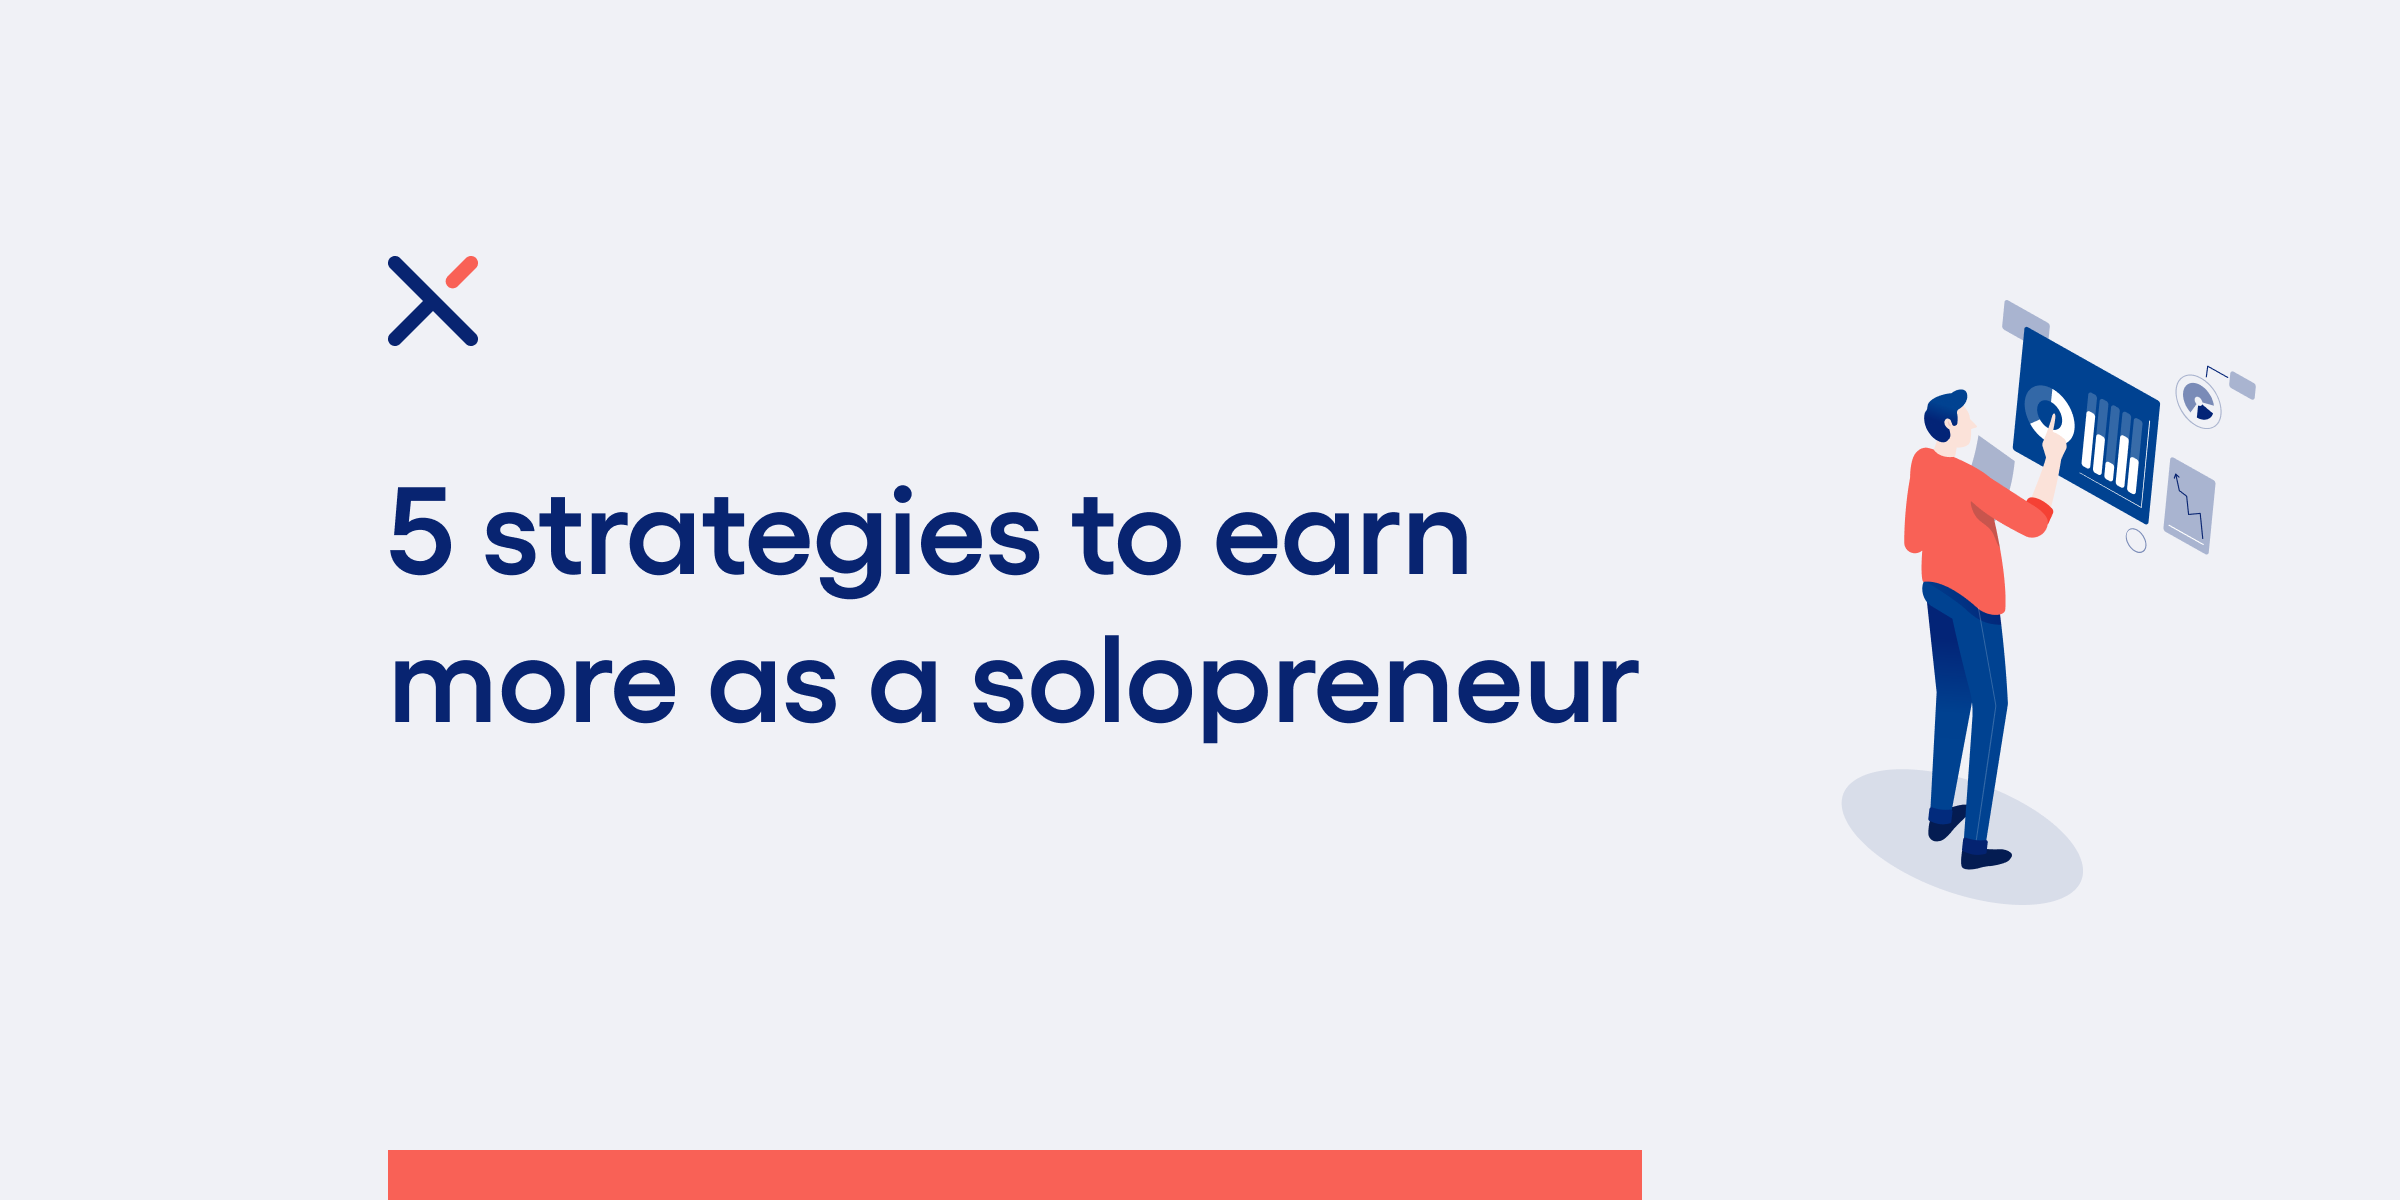 Sustaining the solopreneur lifestyle [5 strategies to earn more]